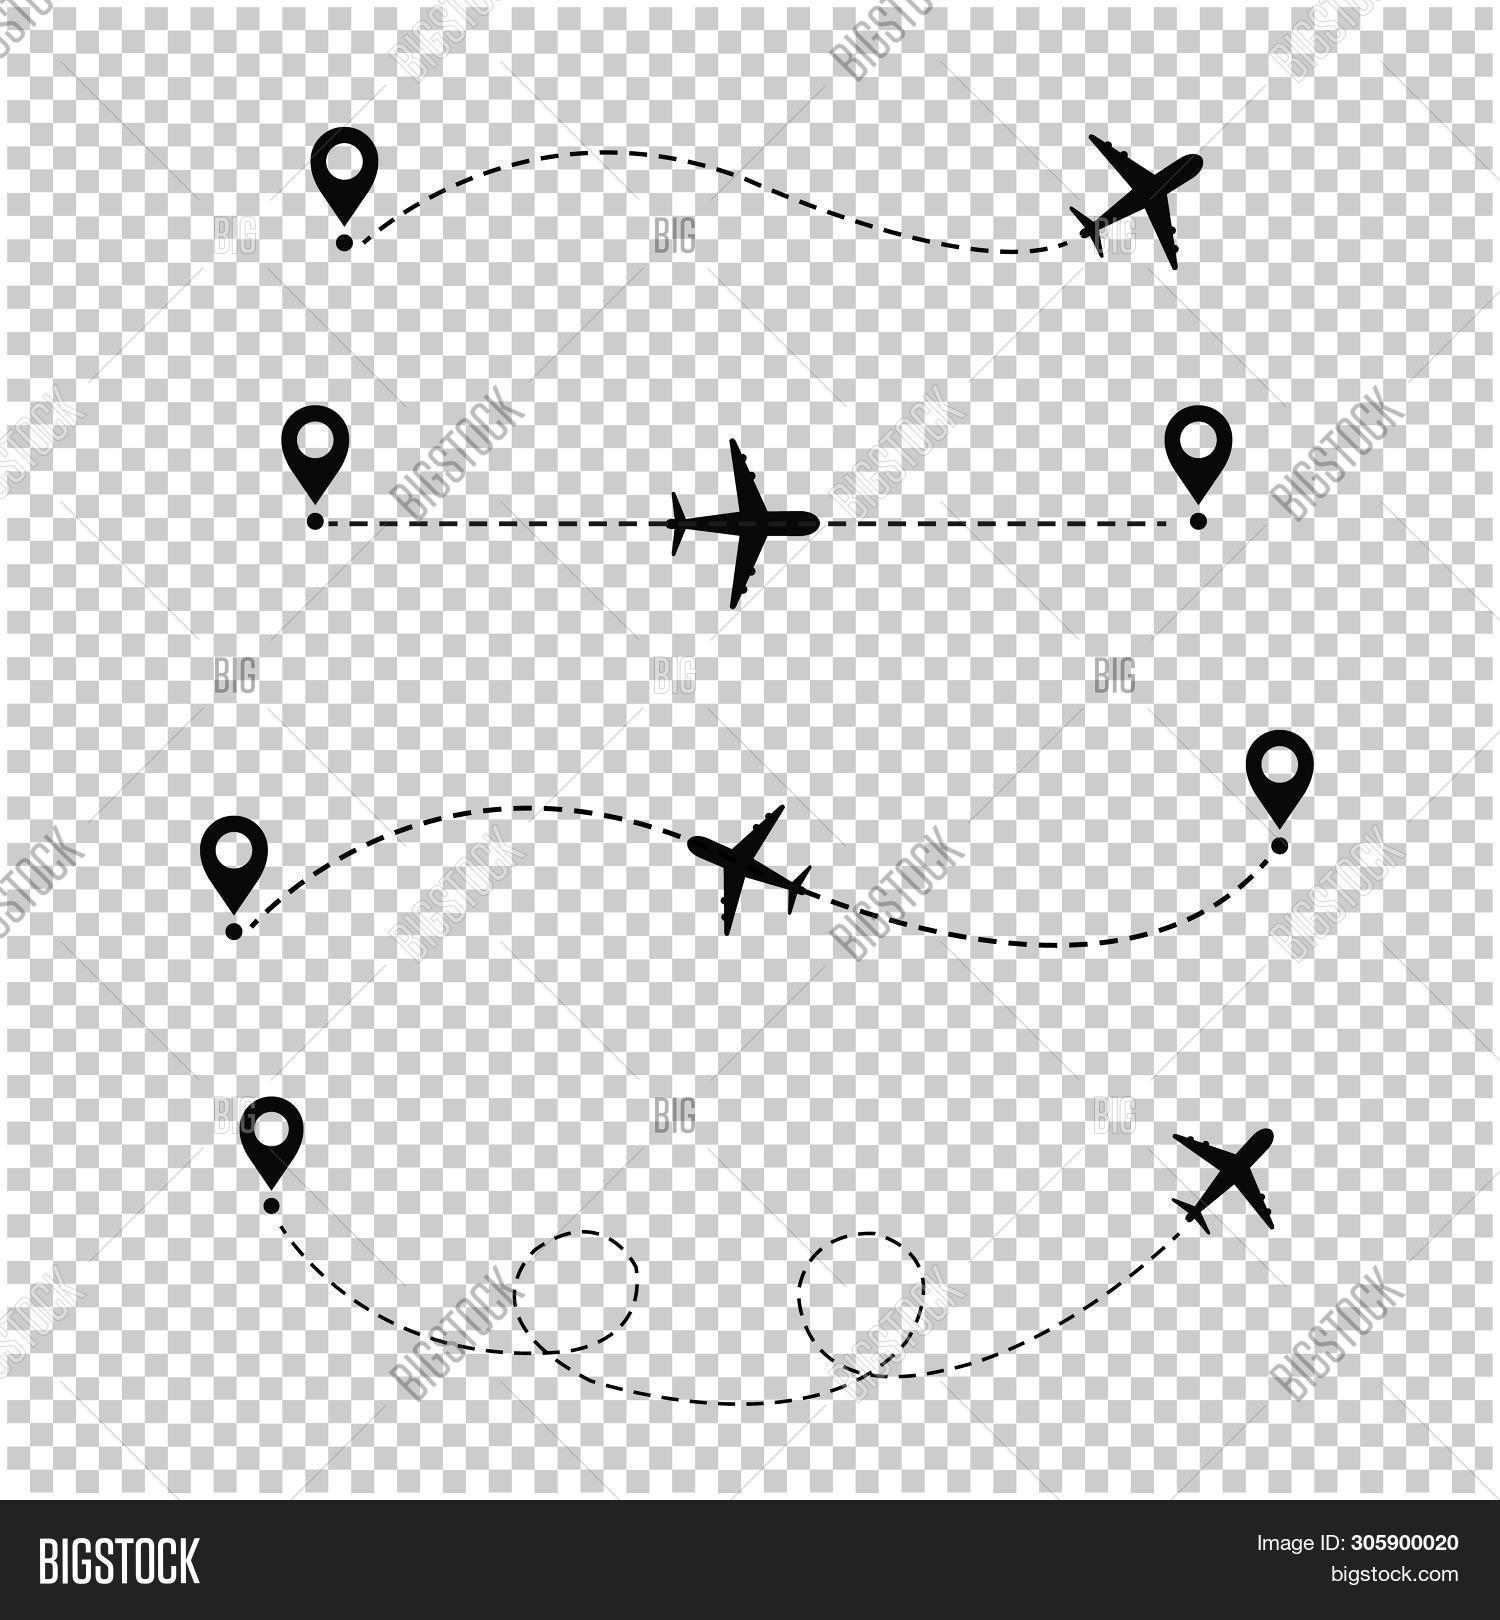 Airplane Dotted Line Image & Photo (Free Trial) | Bigstock